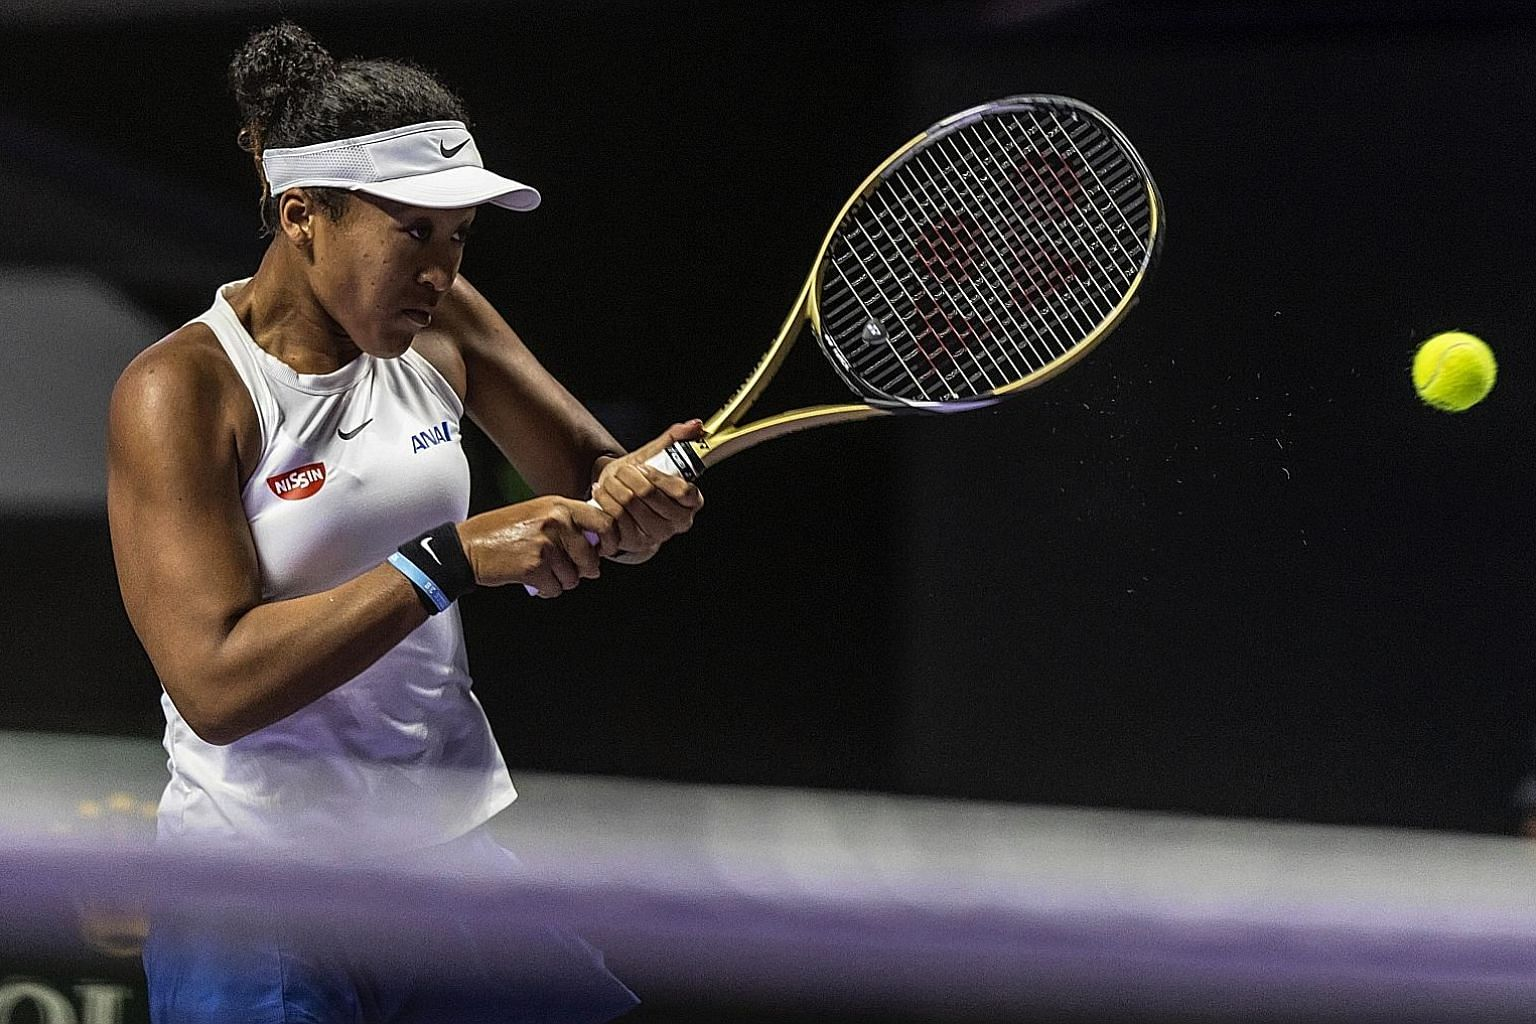 Naomi Osaka returning to Petra Kvitova in the opening match of the WTA Finals in Shenzhen. After recent titles in Osaka and Beijing, the in-form Japanese stretched her winning run to 11 matches with a three-set victory.